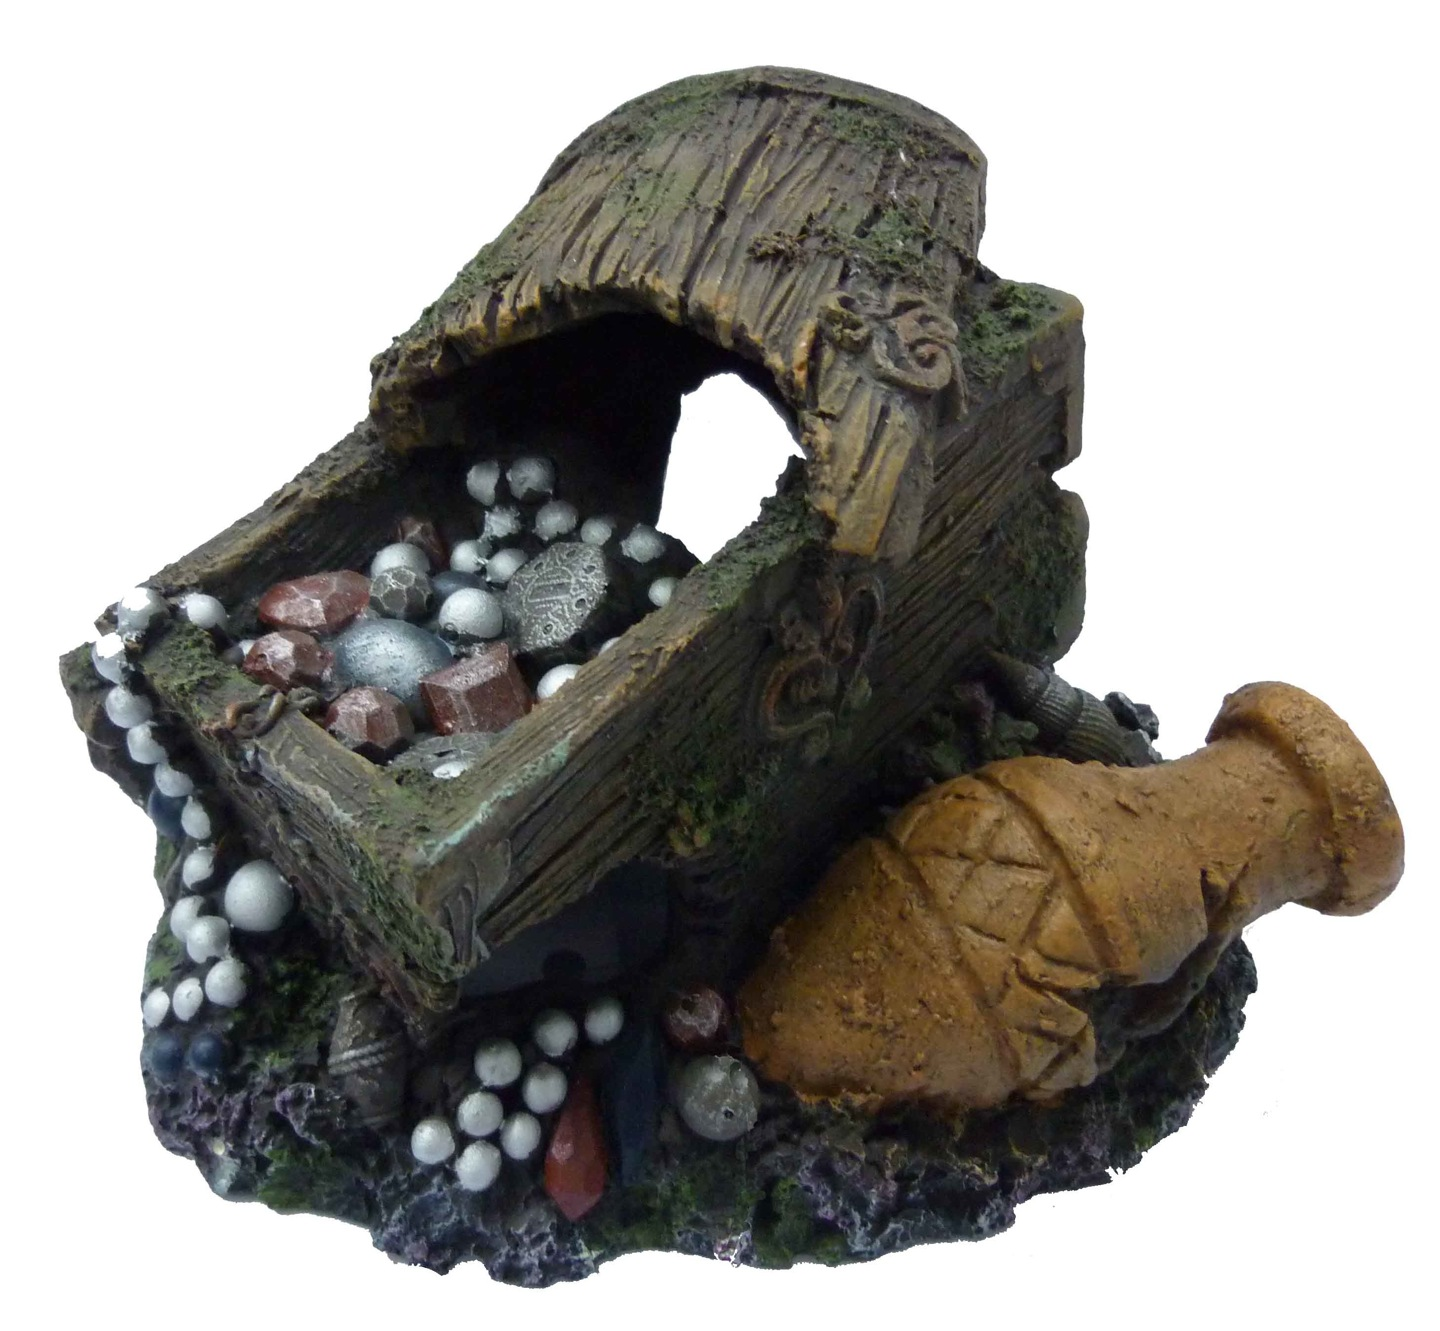 Supa Large Treasure Chest & Barrel Aquarium Ornament